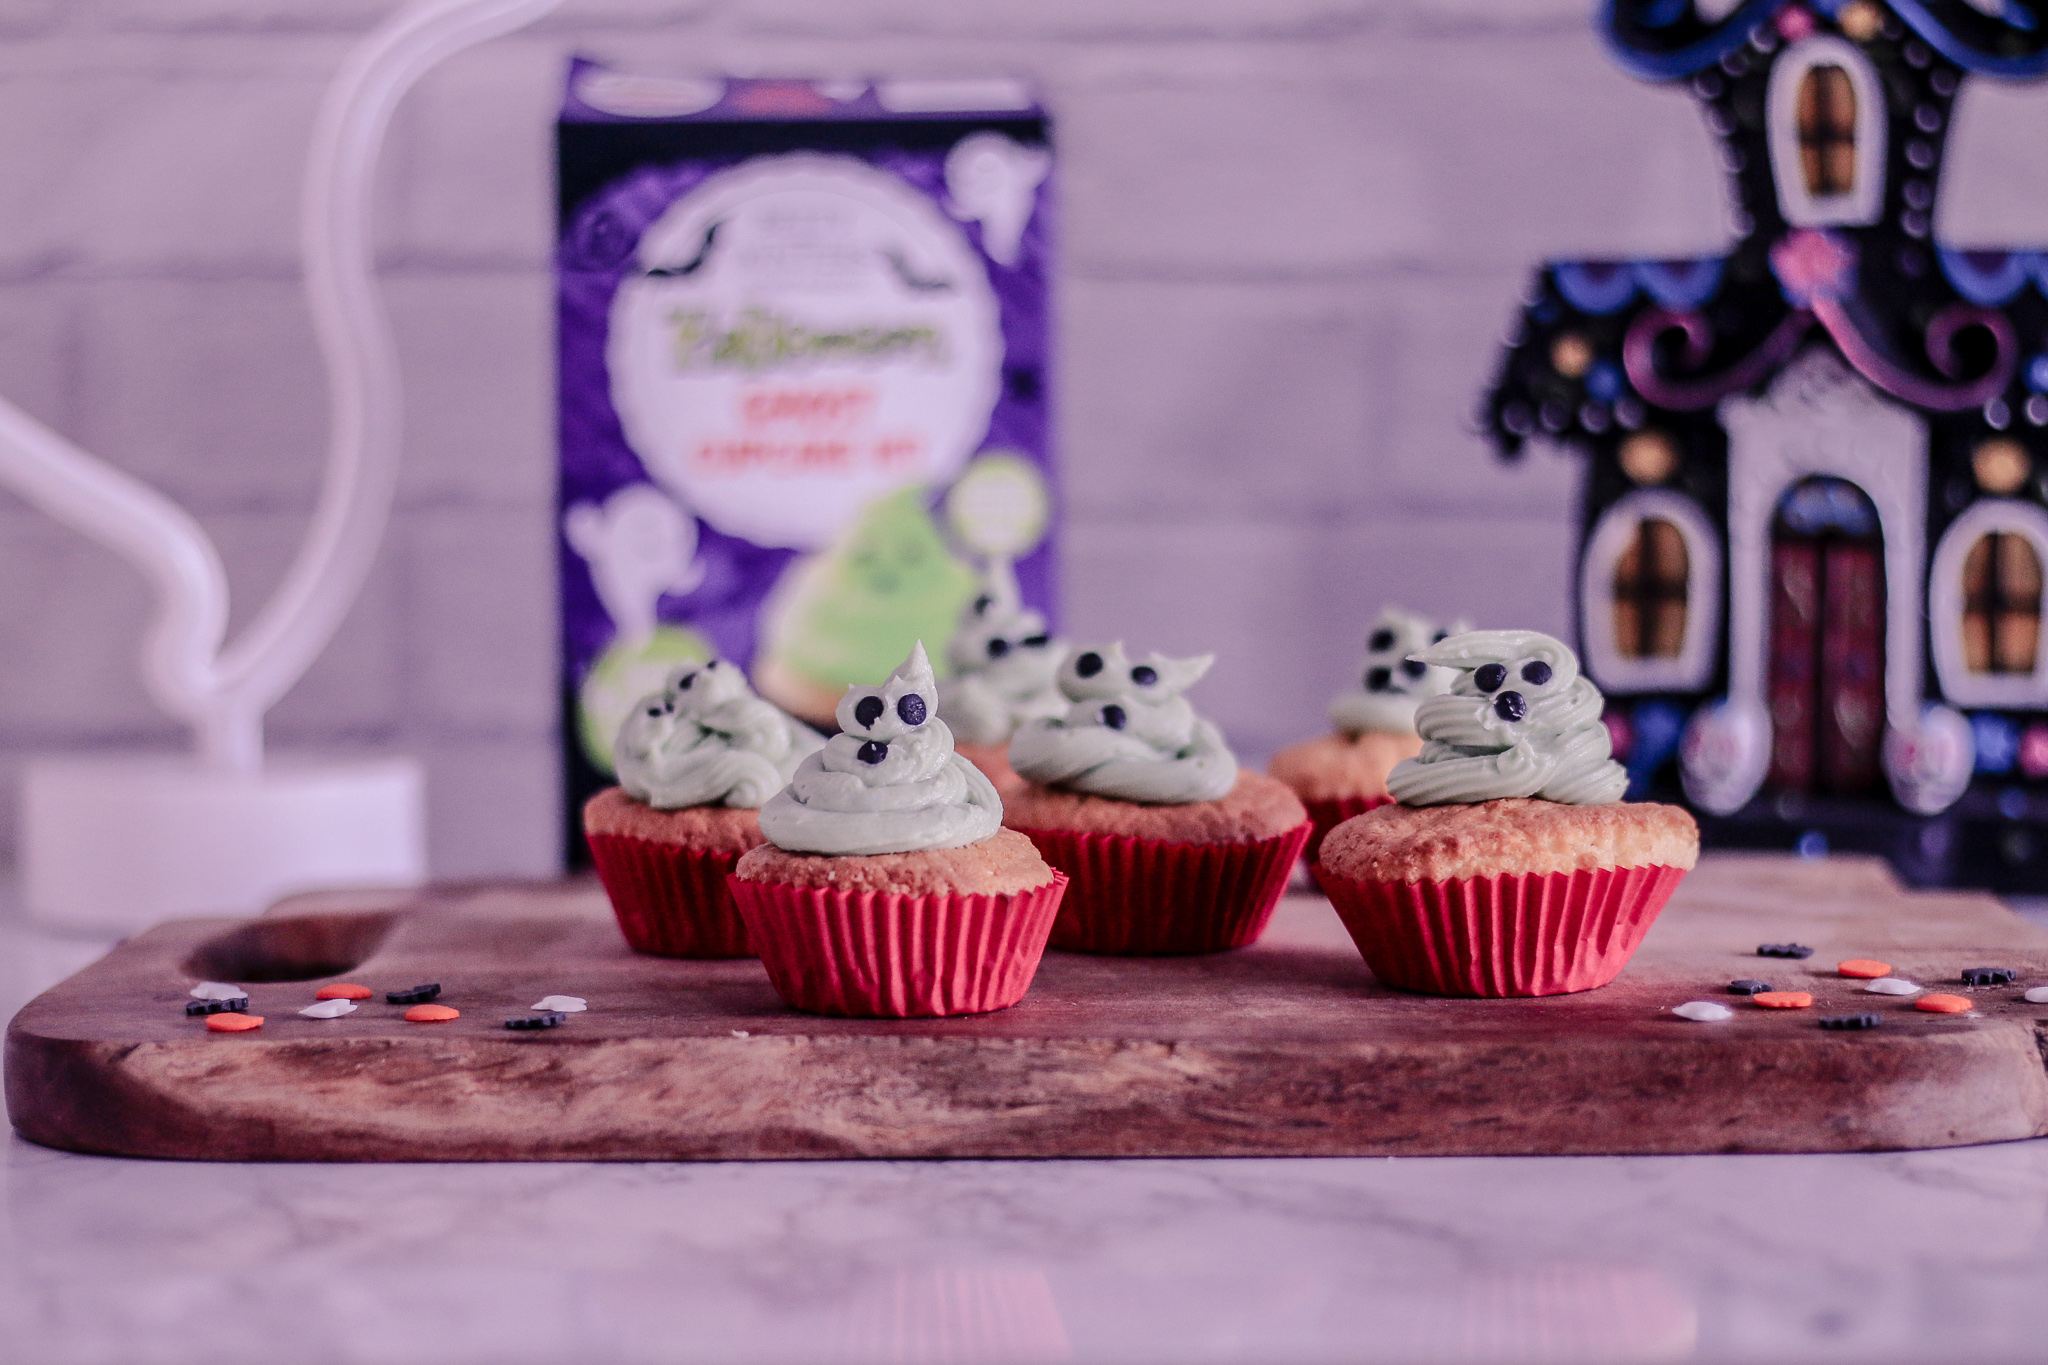 Photo of 6 cupcakes with green icing on a wooden cutting board with the betty winters halloween ghost cupcake box in the background out of focus